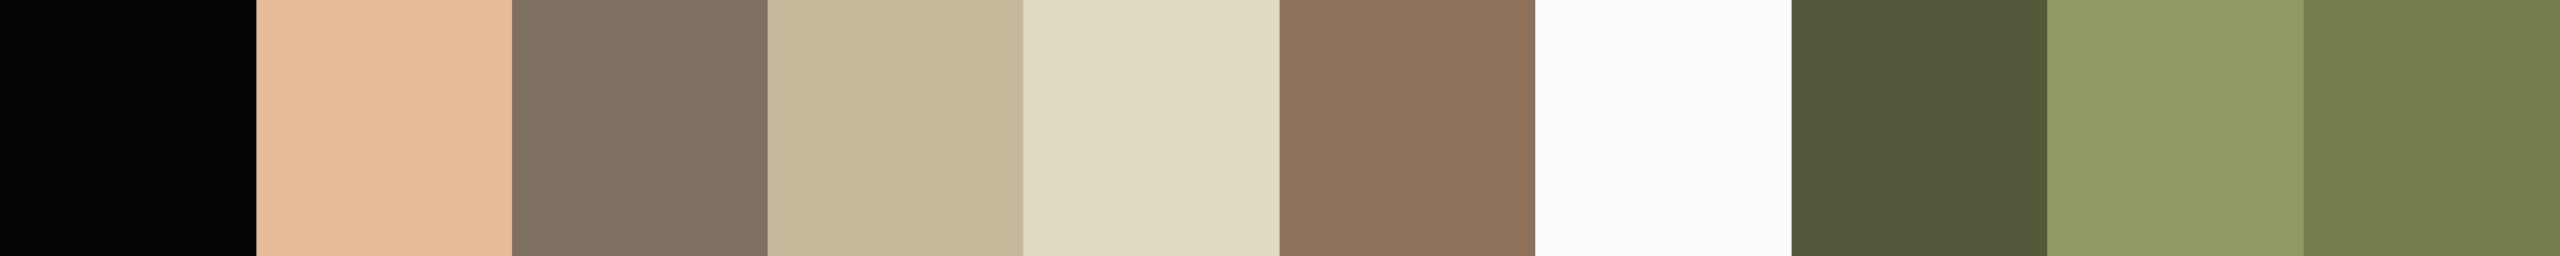 534 Castalia Color Palette